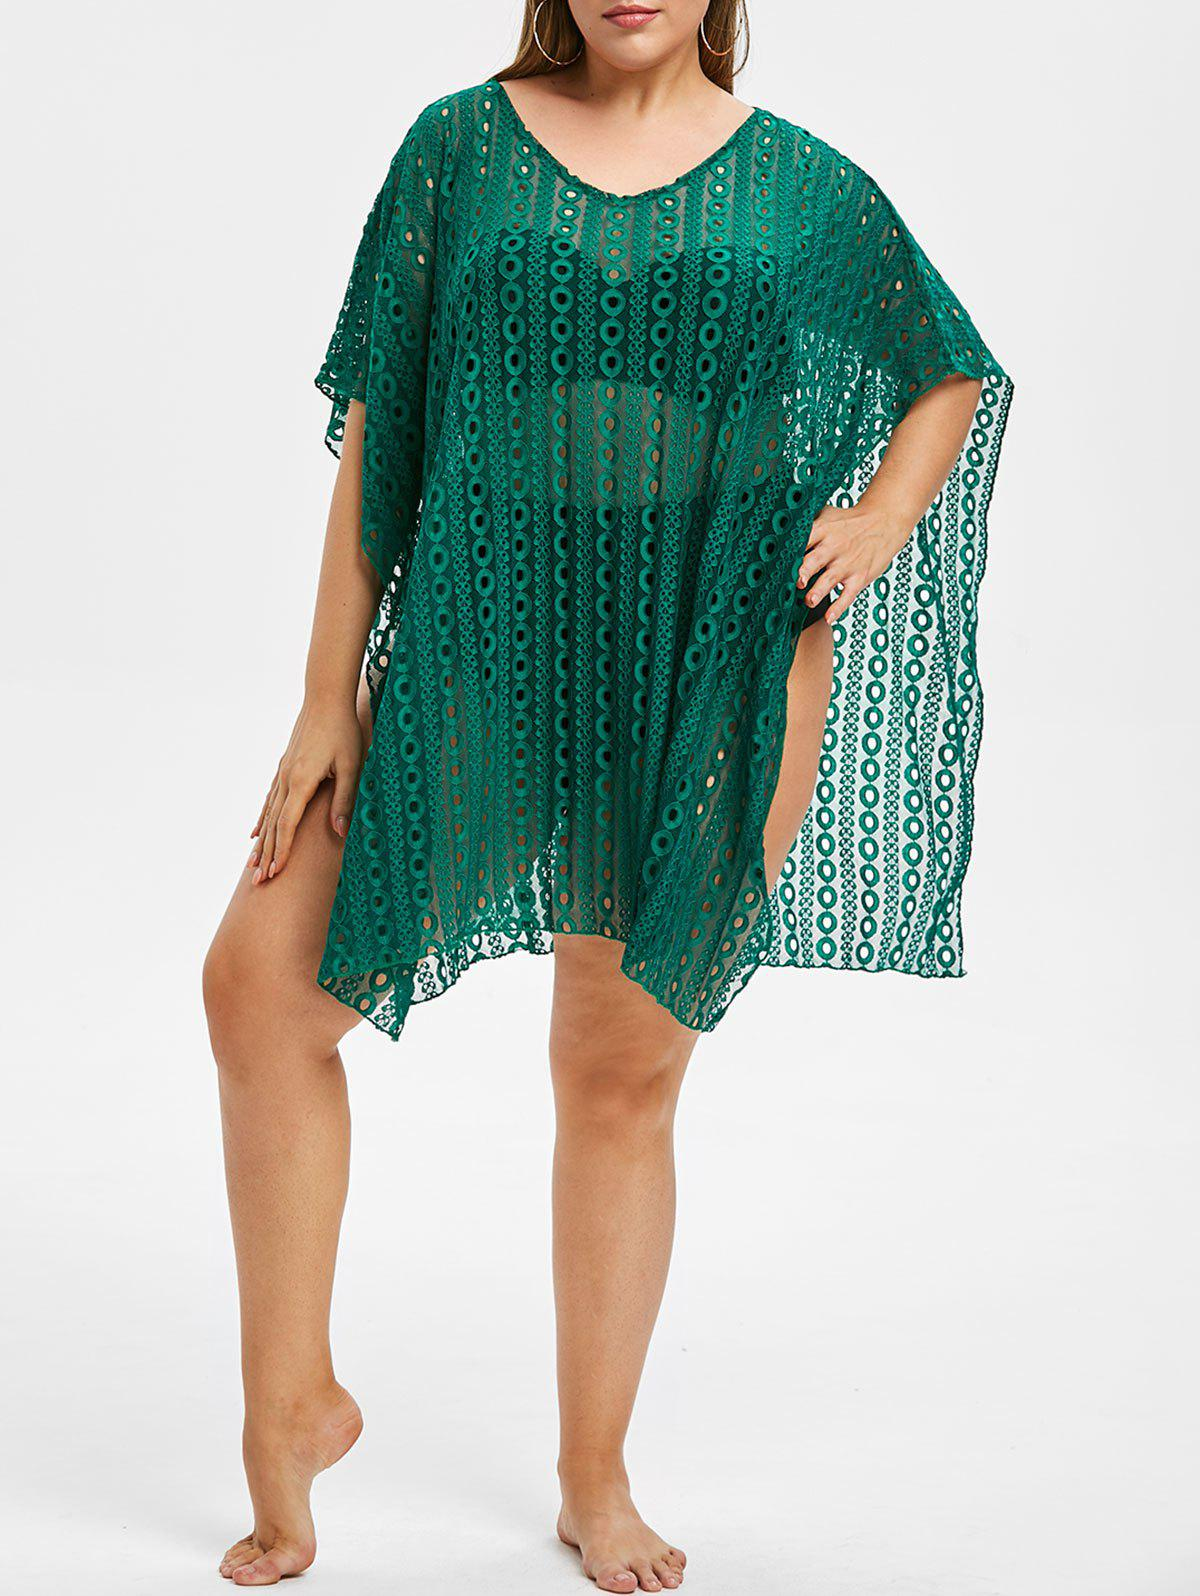 Plus Size Crochet Lace Batwing Cover Up - MEDIUM SEA GREEN ONE SIZE